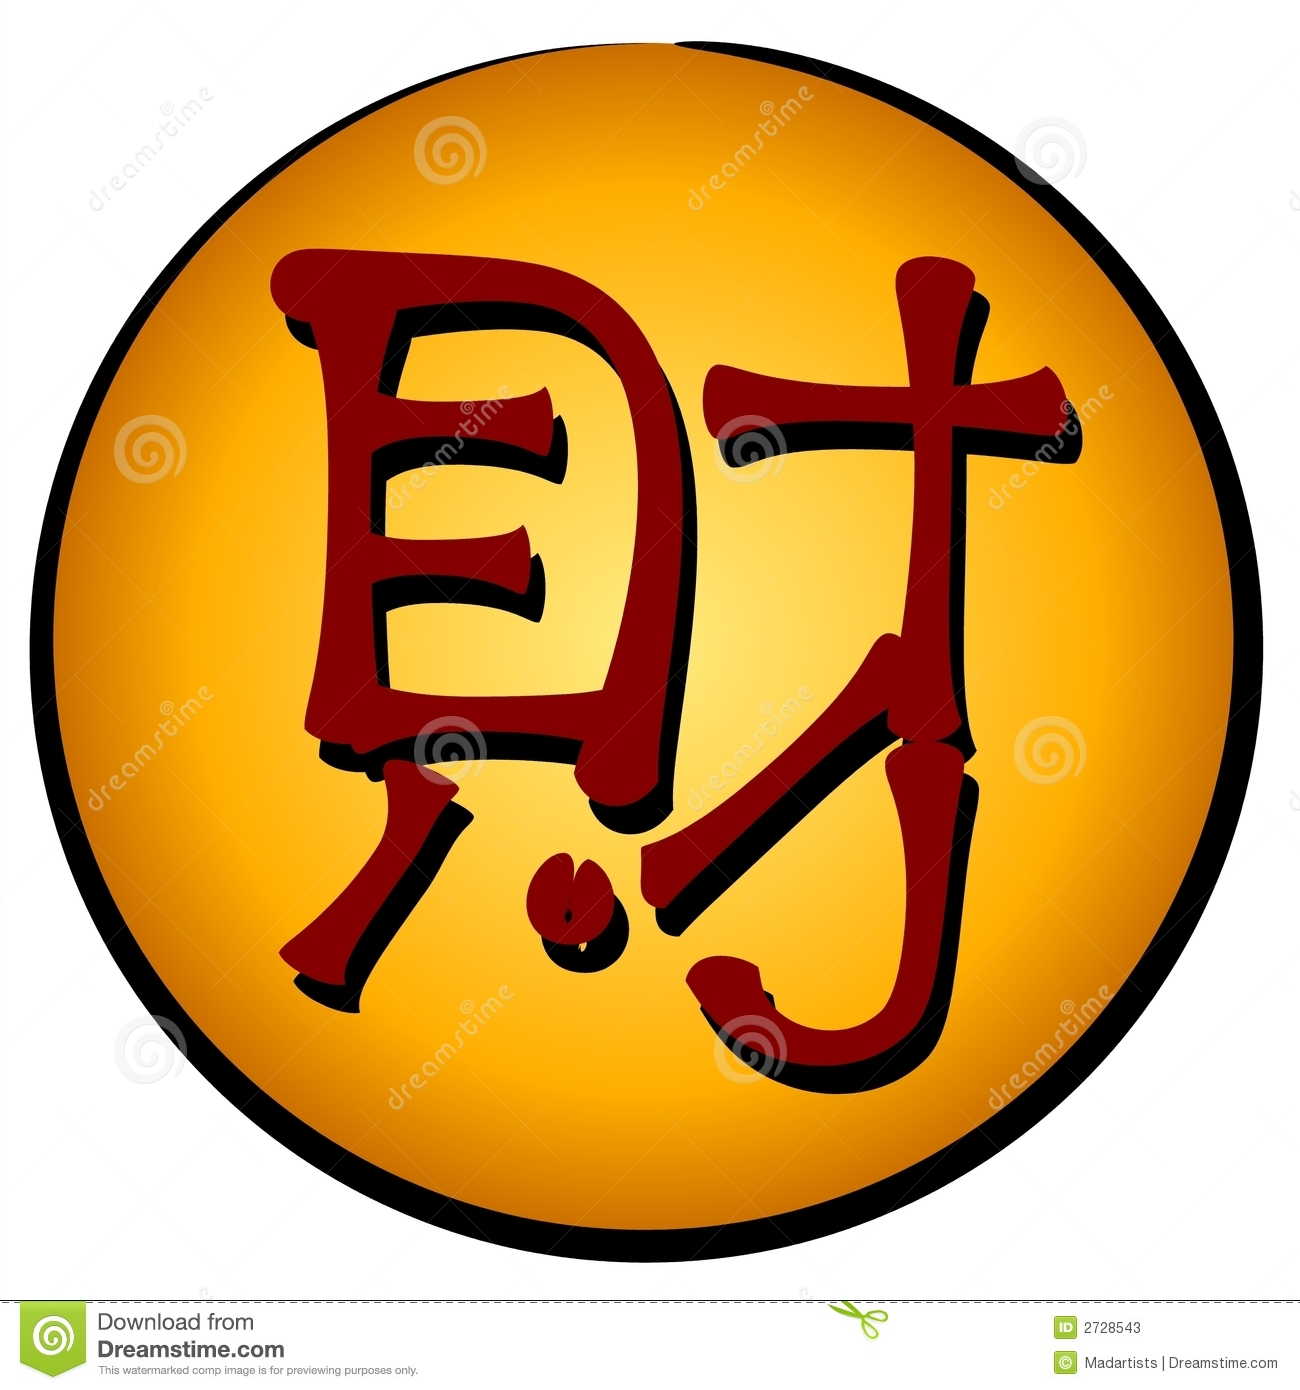 very popular chinese symbol called Cai which means wealth and money ...